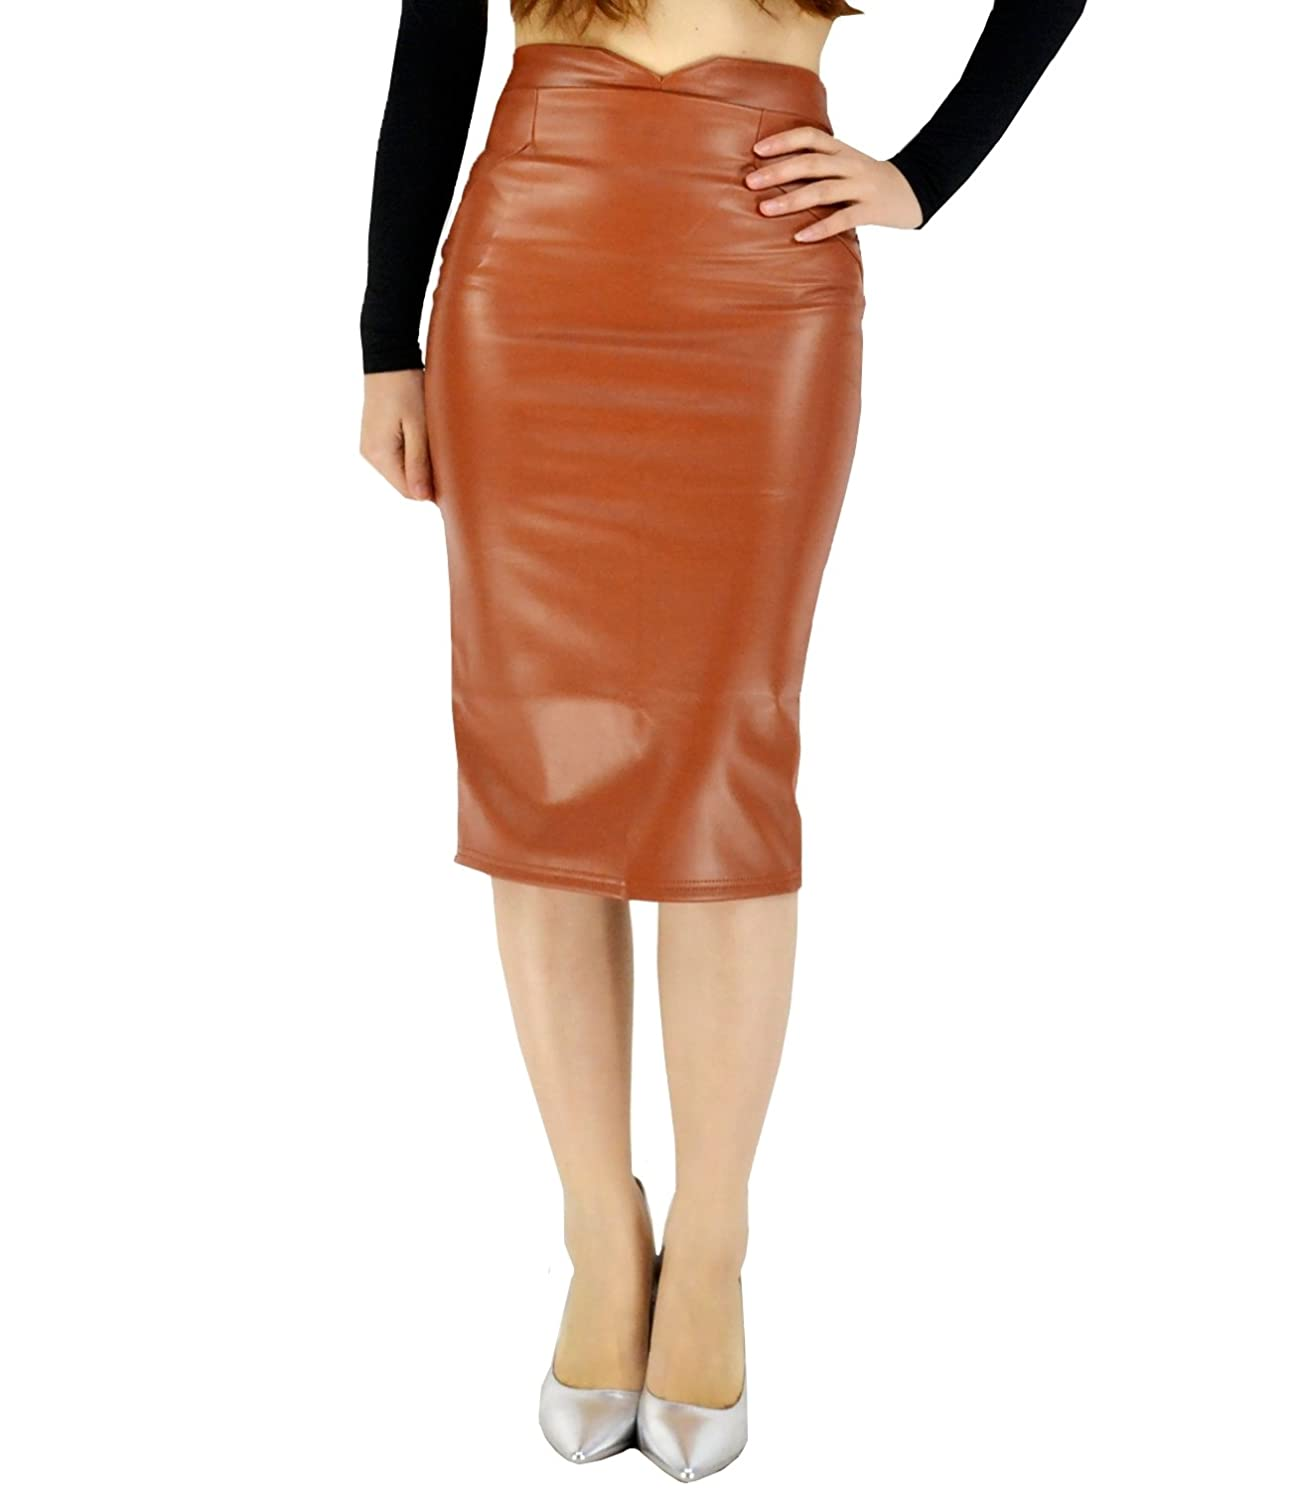 9491349562ed YSJERA Women's PU Leather Stretch High Waist Midi Skirt Bodycon Pencil  Skirts Solid Color at Amazon Women's Clothing store: